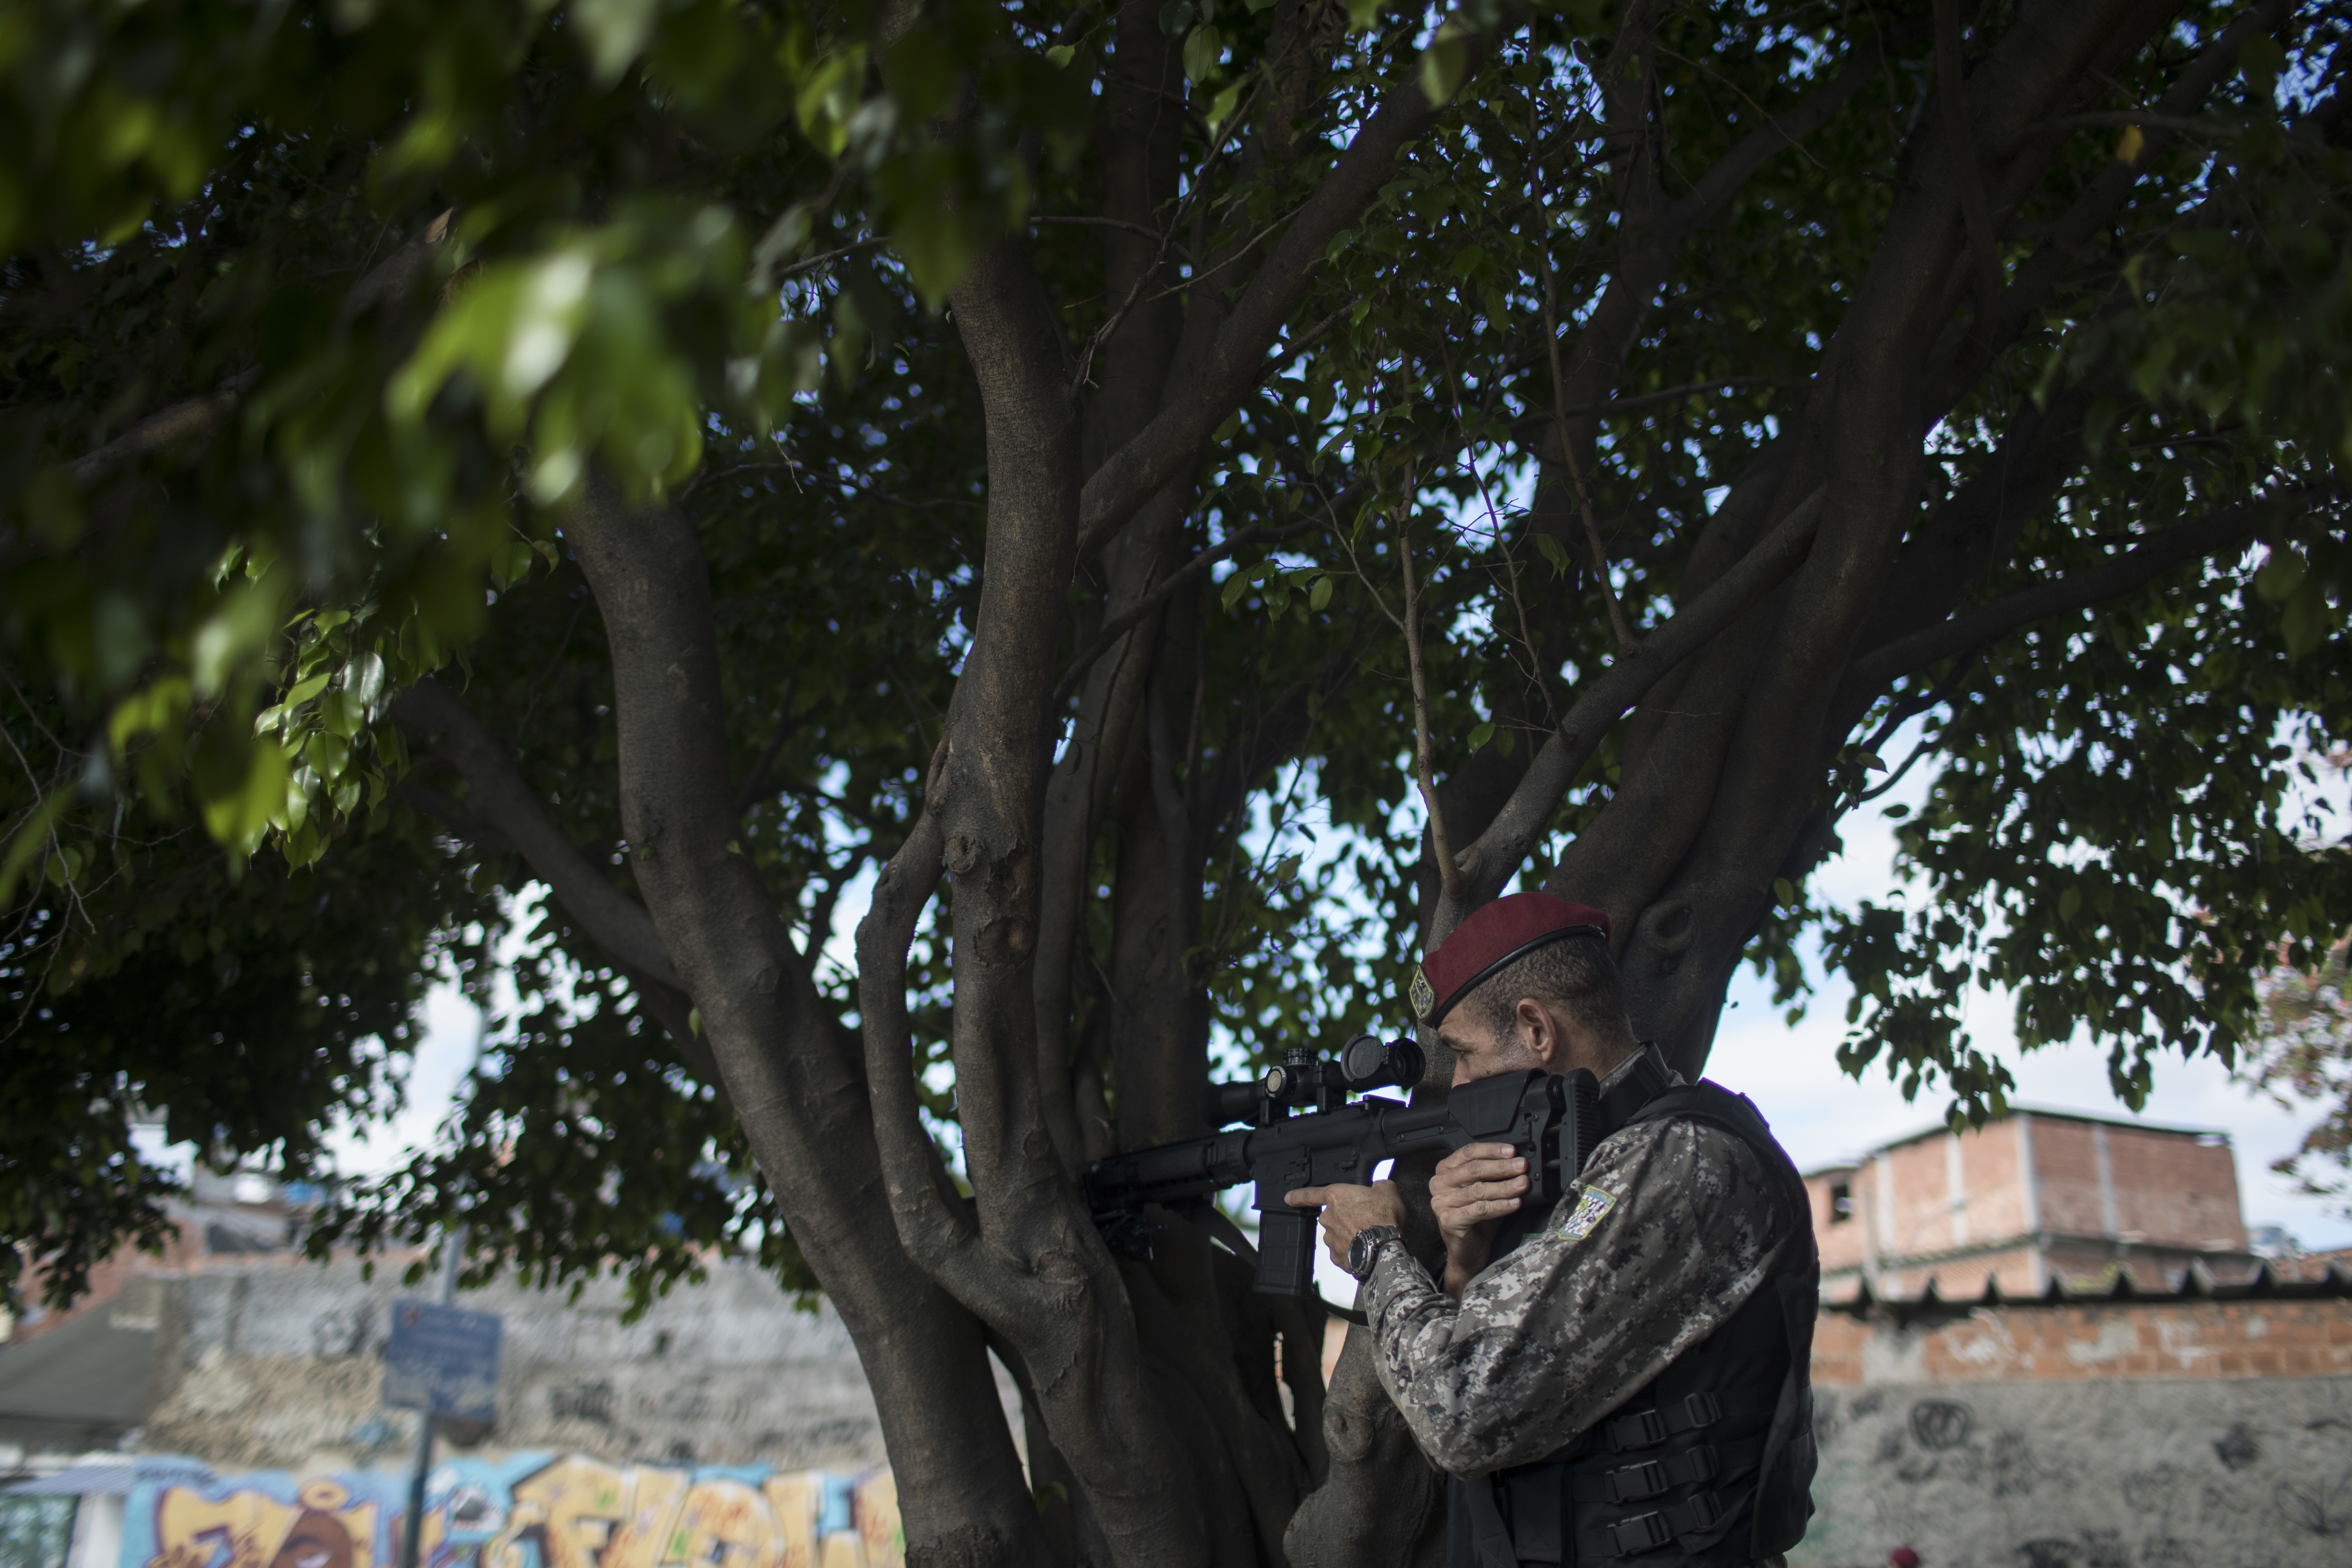 A Brazil's national security force officer takes position during a police operation in search for criminals in Vila do Joao, part of the Mare complex of slums during the 2016 Summer Olympics in Rio de Janeiro, Brazil, Thursday, Aug. 11, 2016. A police off